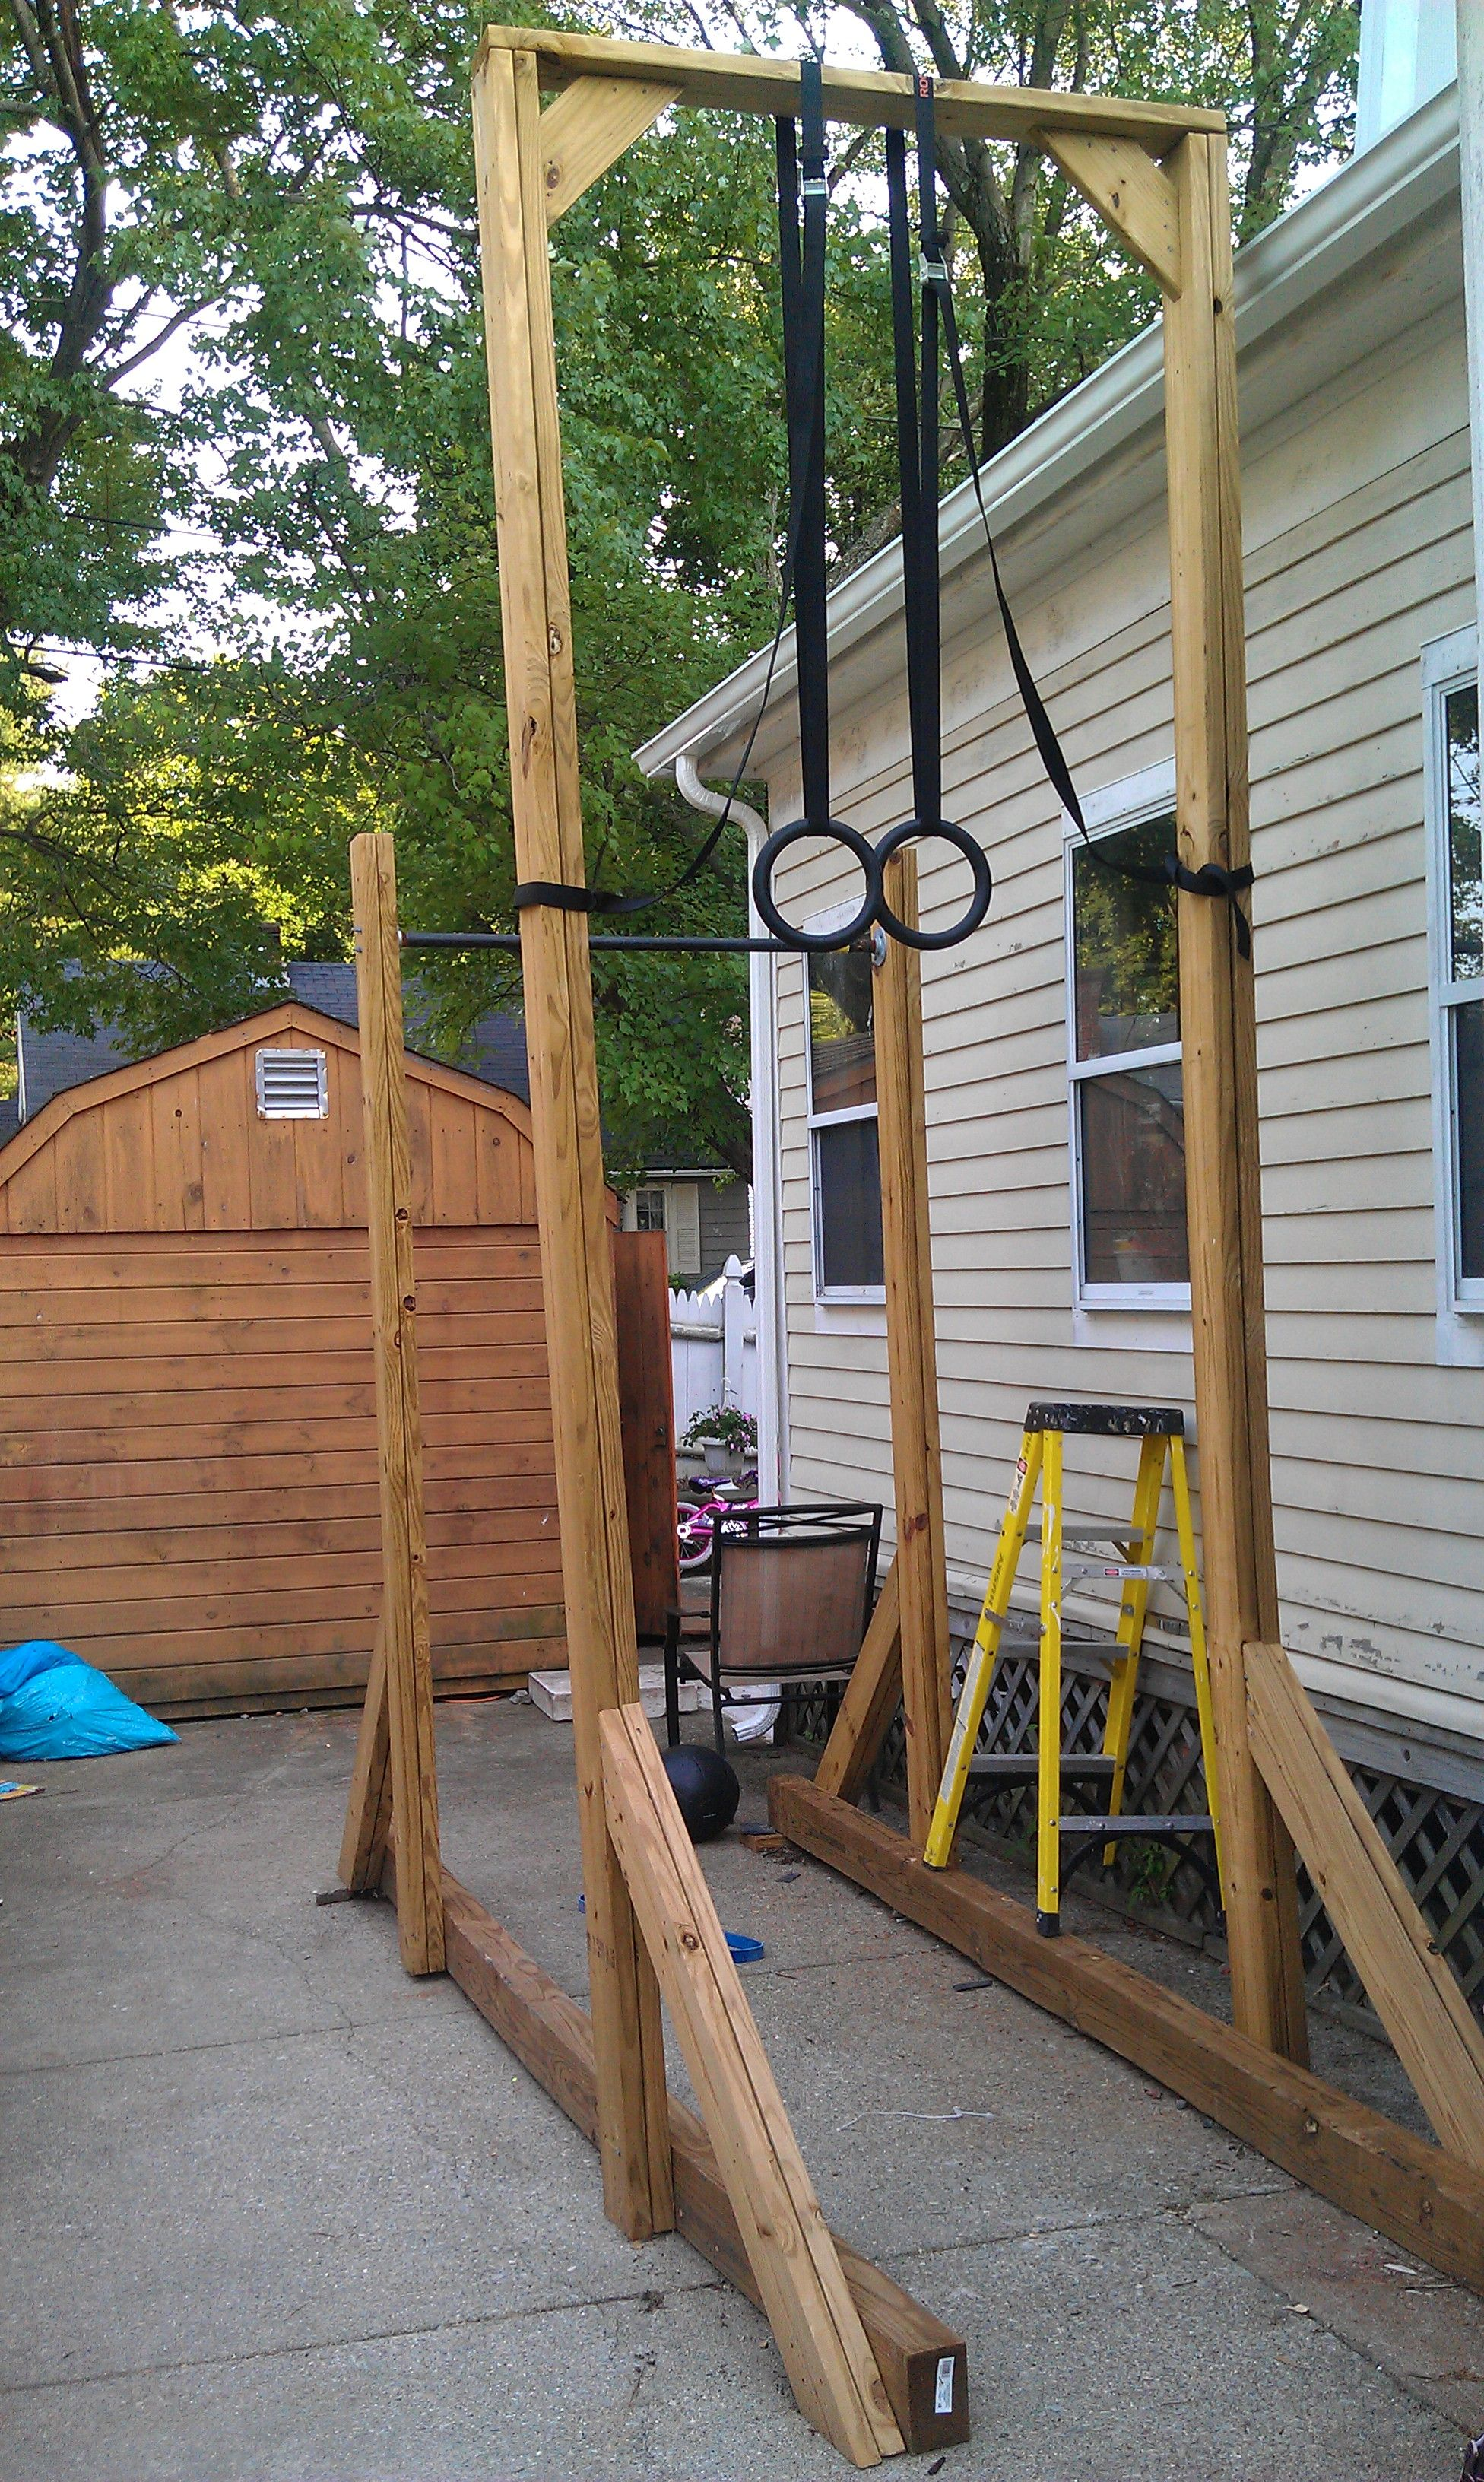 backyard pull up bar ring set could add a 15 rope climb too